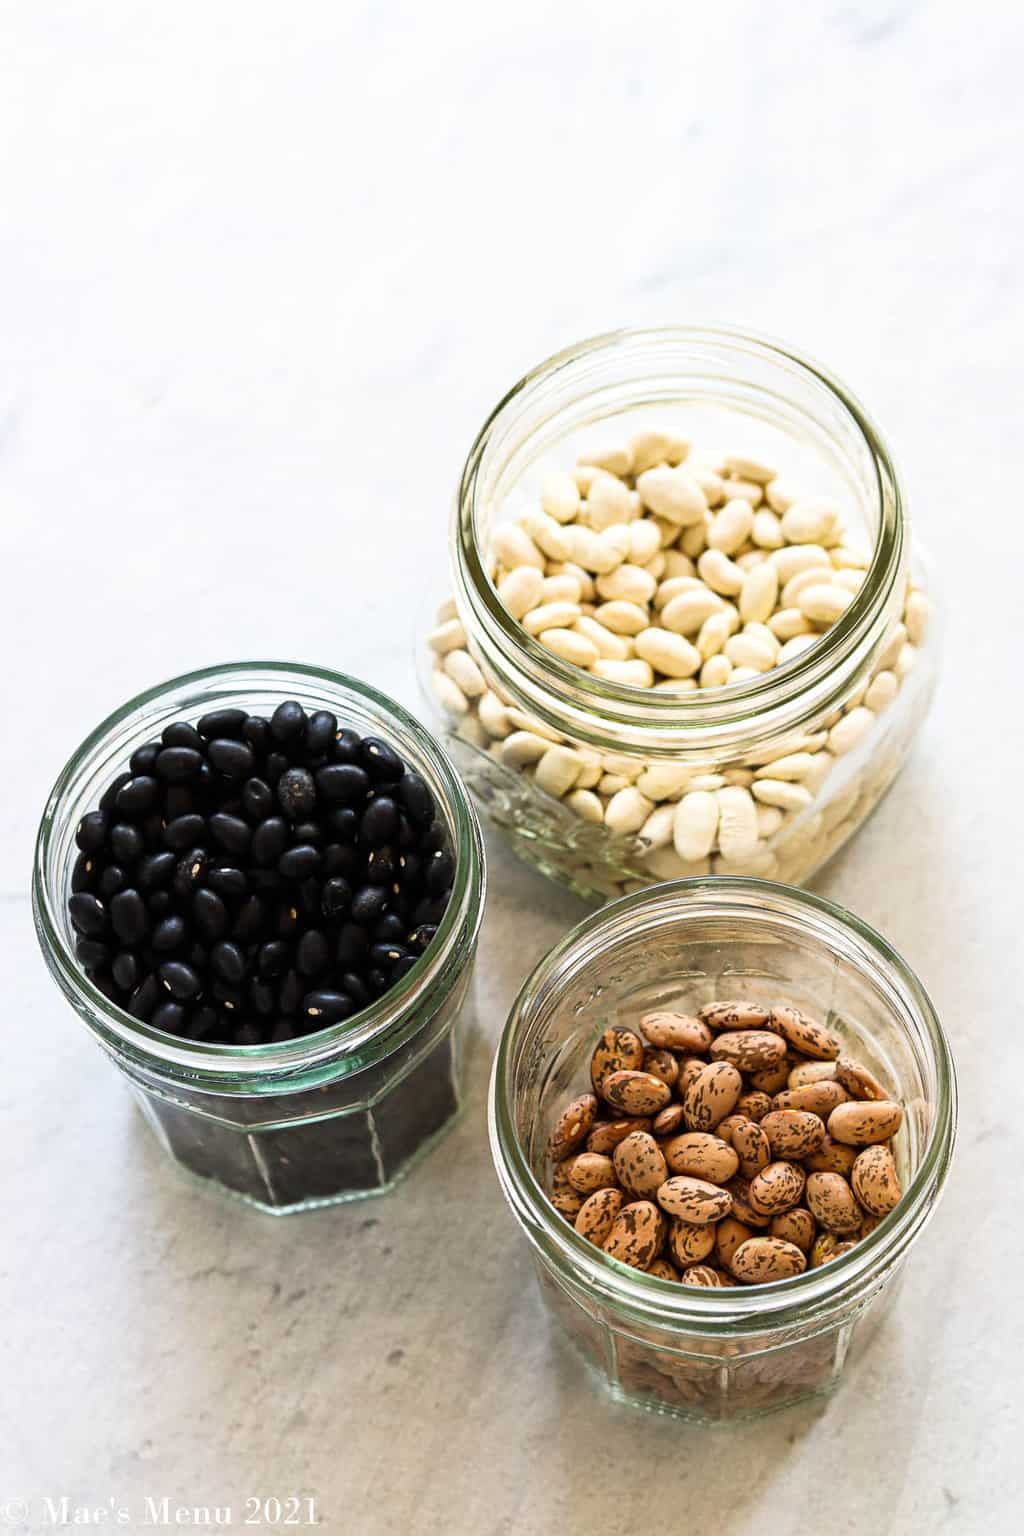 3 small glass containers of dried beans: white beans, black beans, and pinto beans